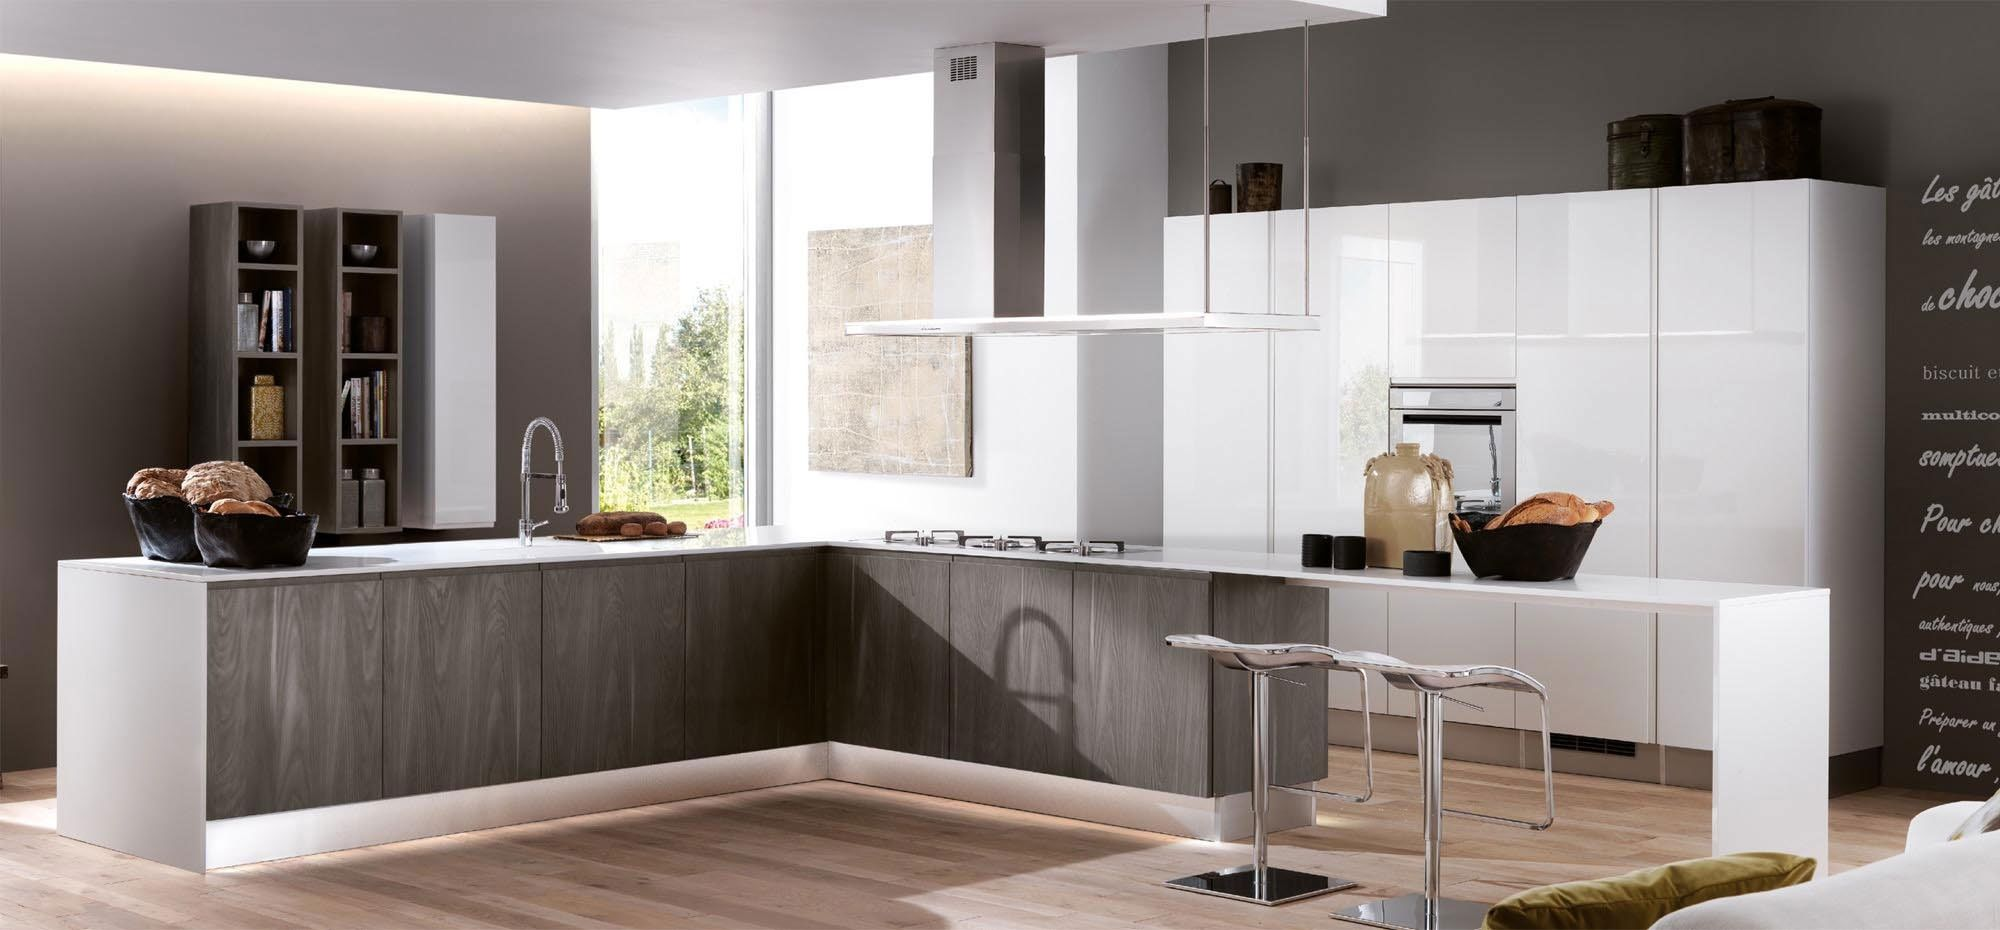 Berloni Kitchens Brera Architecture Kitchens And Dining Rooms Pinterest Kitchens